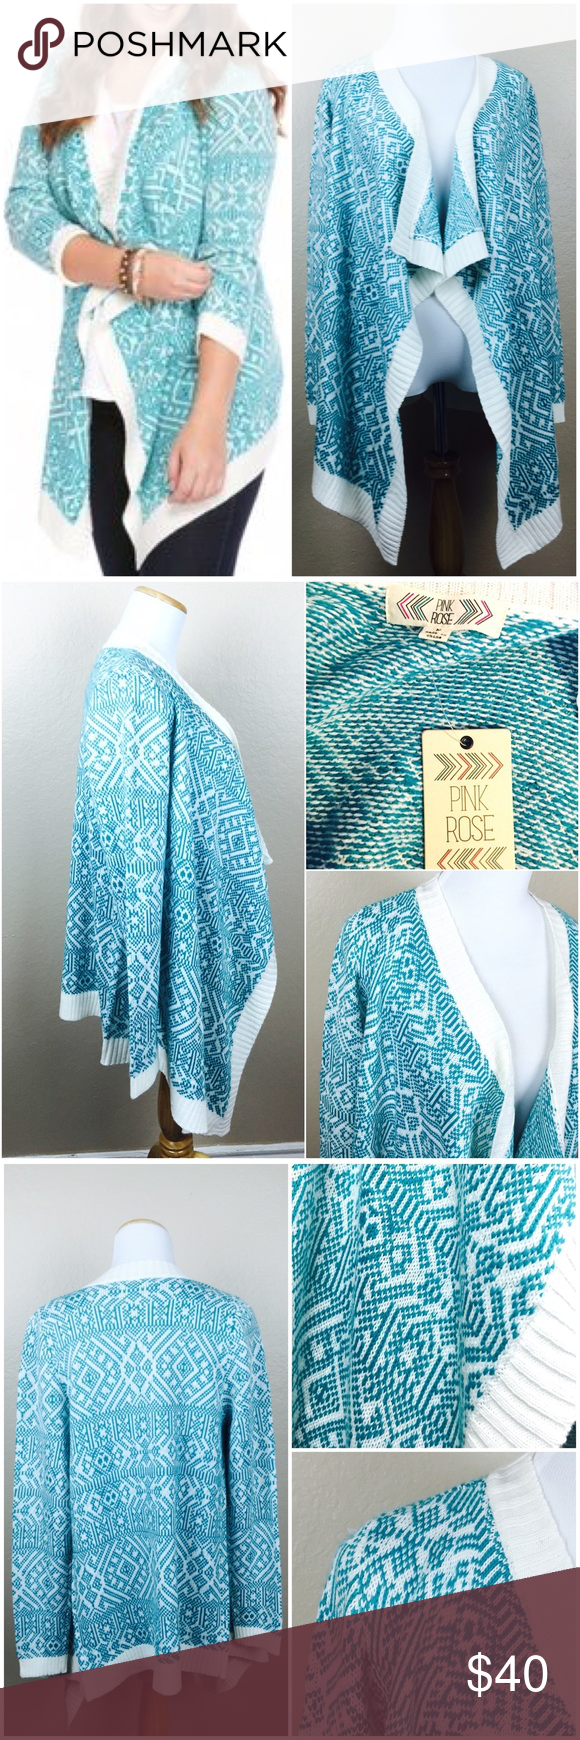 "Teal Spring Knit Open Asymmetrical Cardigan New with Tags. Perfect spring colors! Pink Rose Boutique Asymmetrical Knit Cardigan. Size Medium. Long sleeves. 100% Acrylic. Back length 27"". Front length 34"". Sleeves (pit to hem) 19"". Pink Rose Sweaters Cardigans"